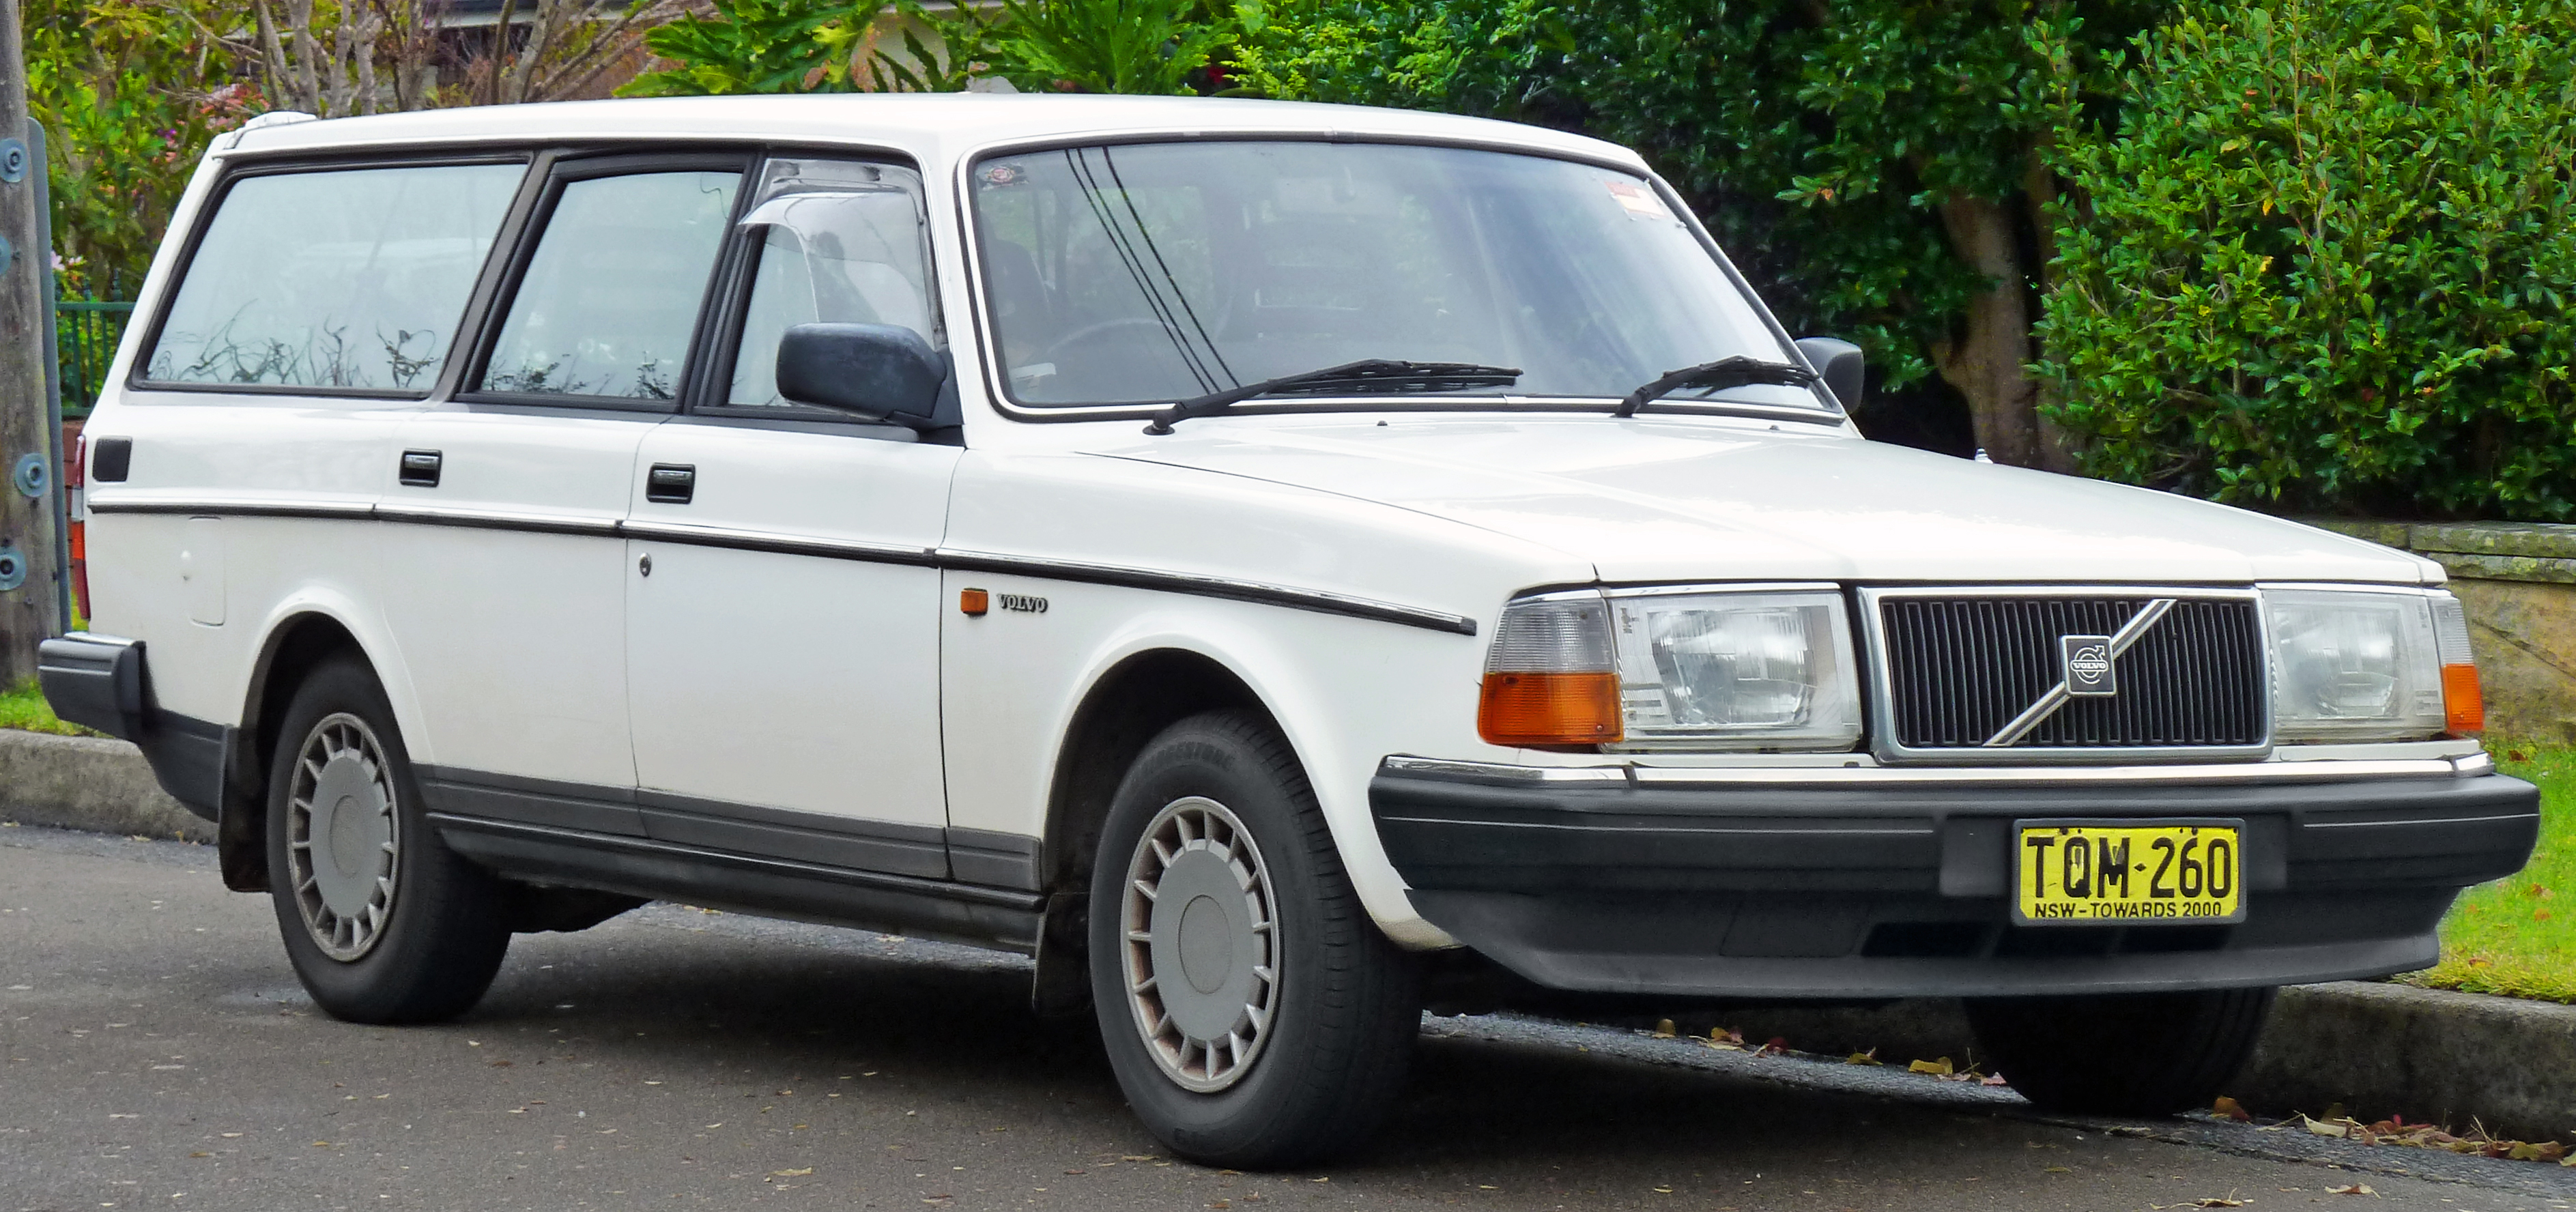 89 Volvo 240 Wagon 1991 Black Amp Tan Volvo 240 Pictures to pin on ...